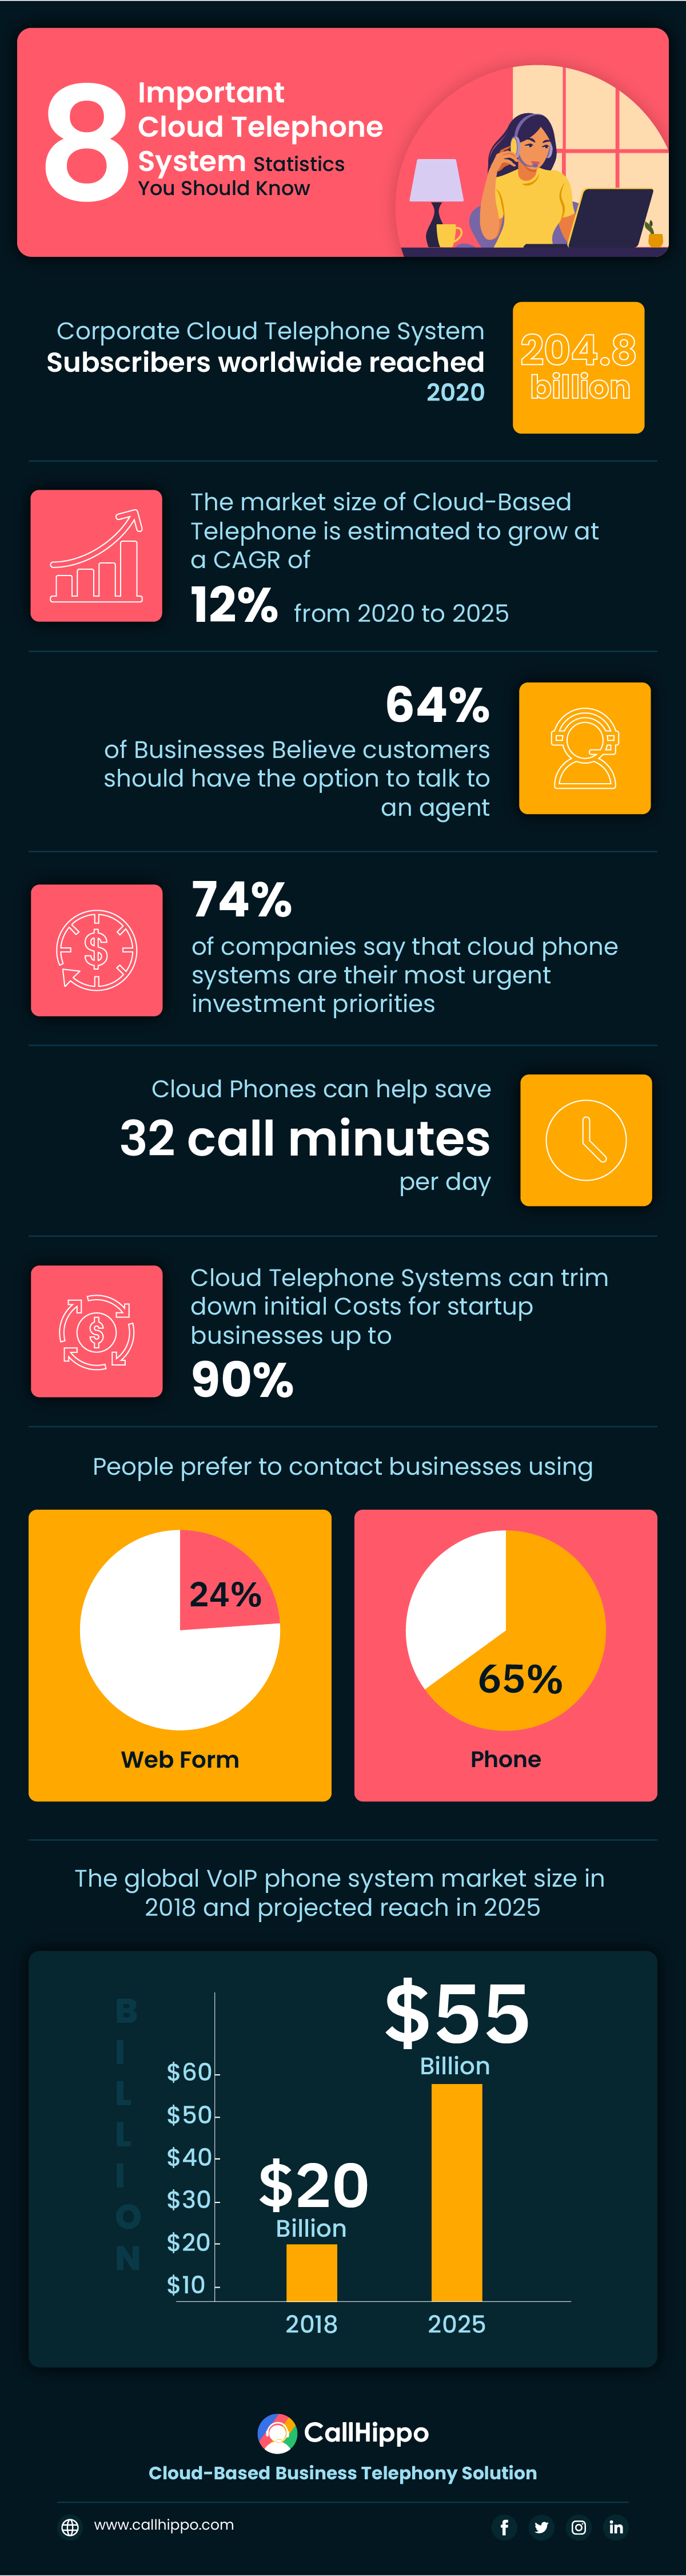 Important Cloud Telephone System Statistics